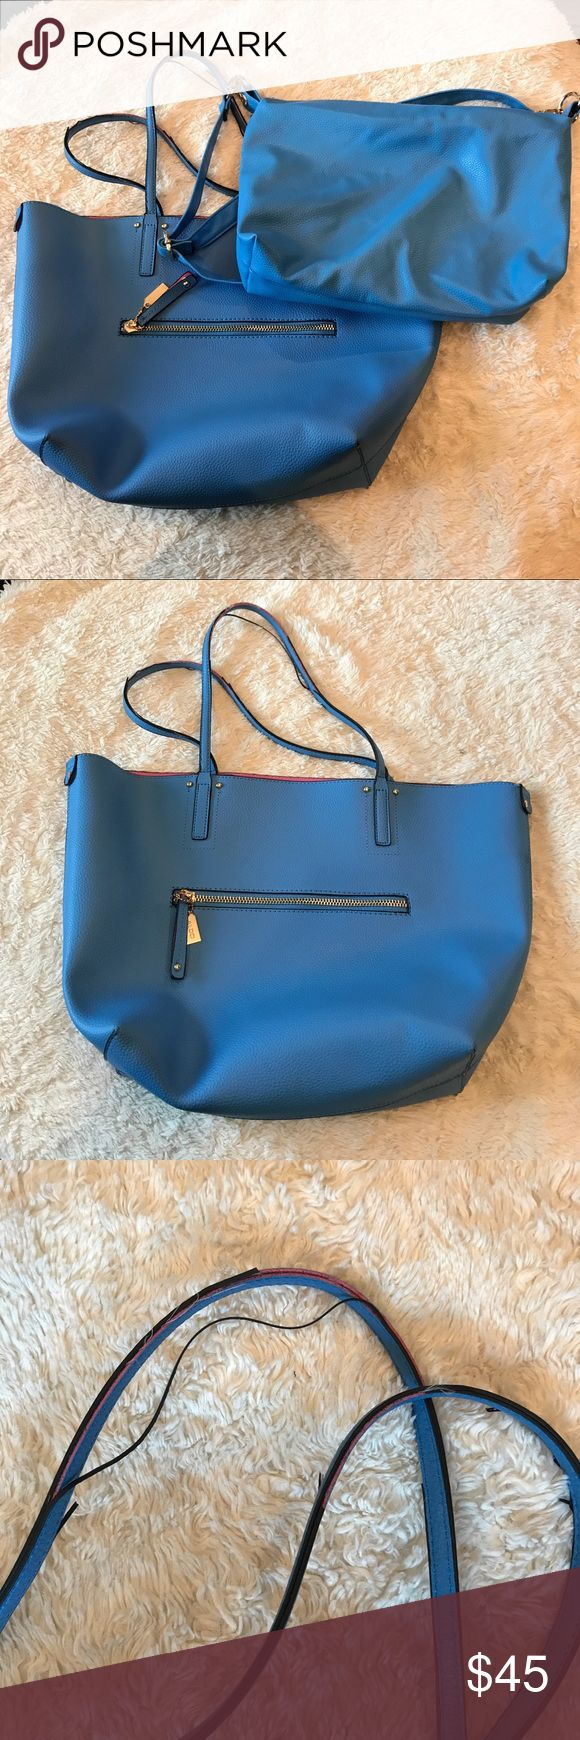 BLUE Aldo tote bag DUO This listing comes with 2 bags.  One shoulder strap tote with the matching bag that can be worn inside the tote or separately.  Second bag has adjustable strap.  Note peeling tote bag  straps (picture). Aldo Bags Totes